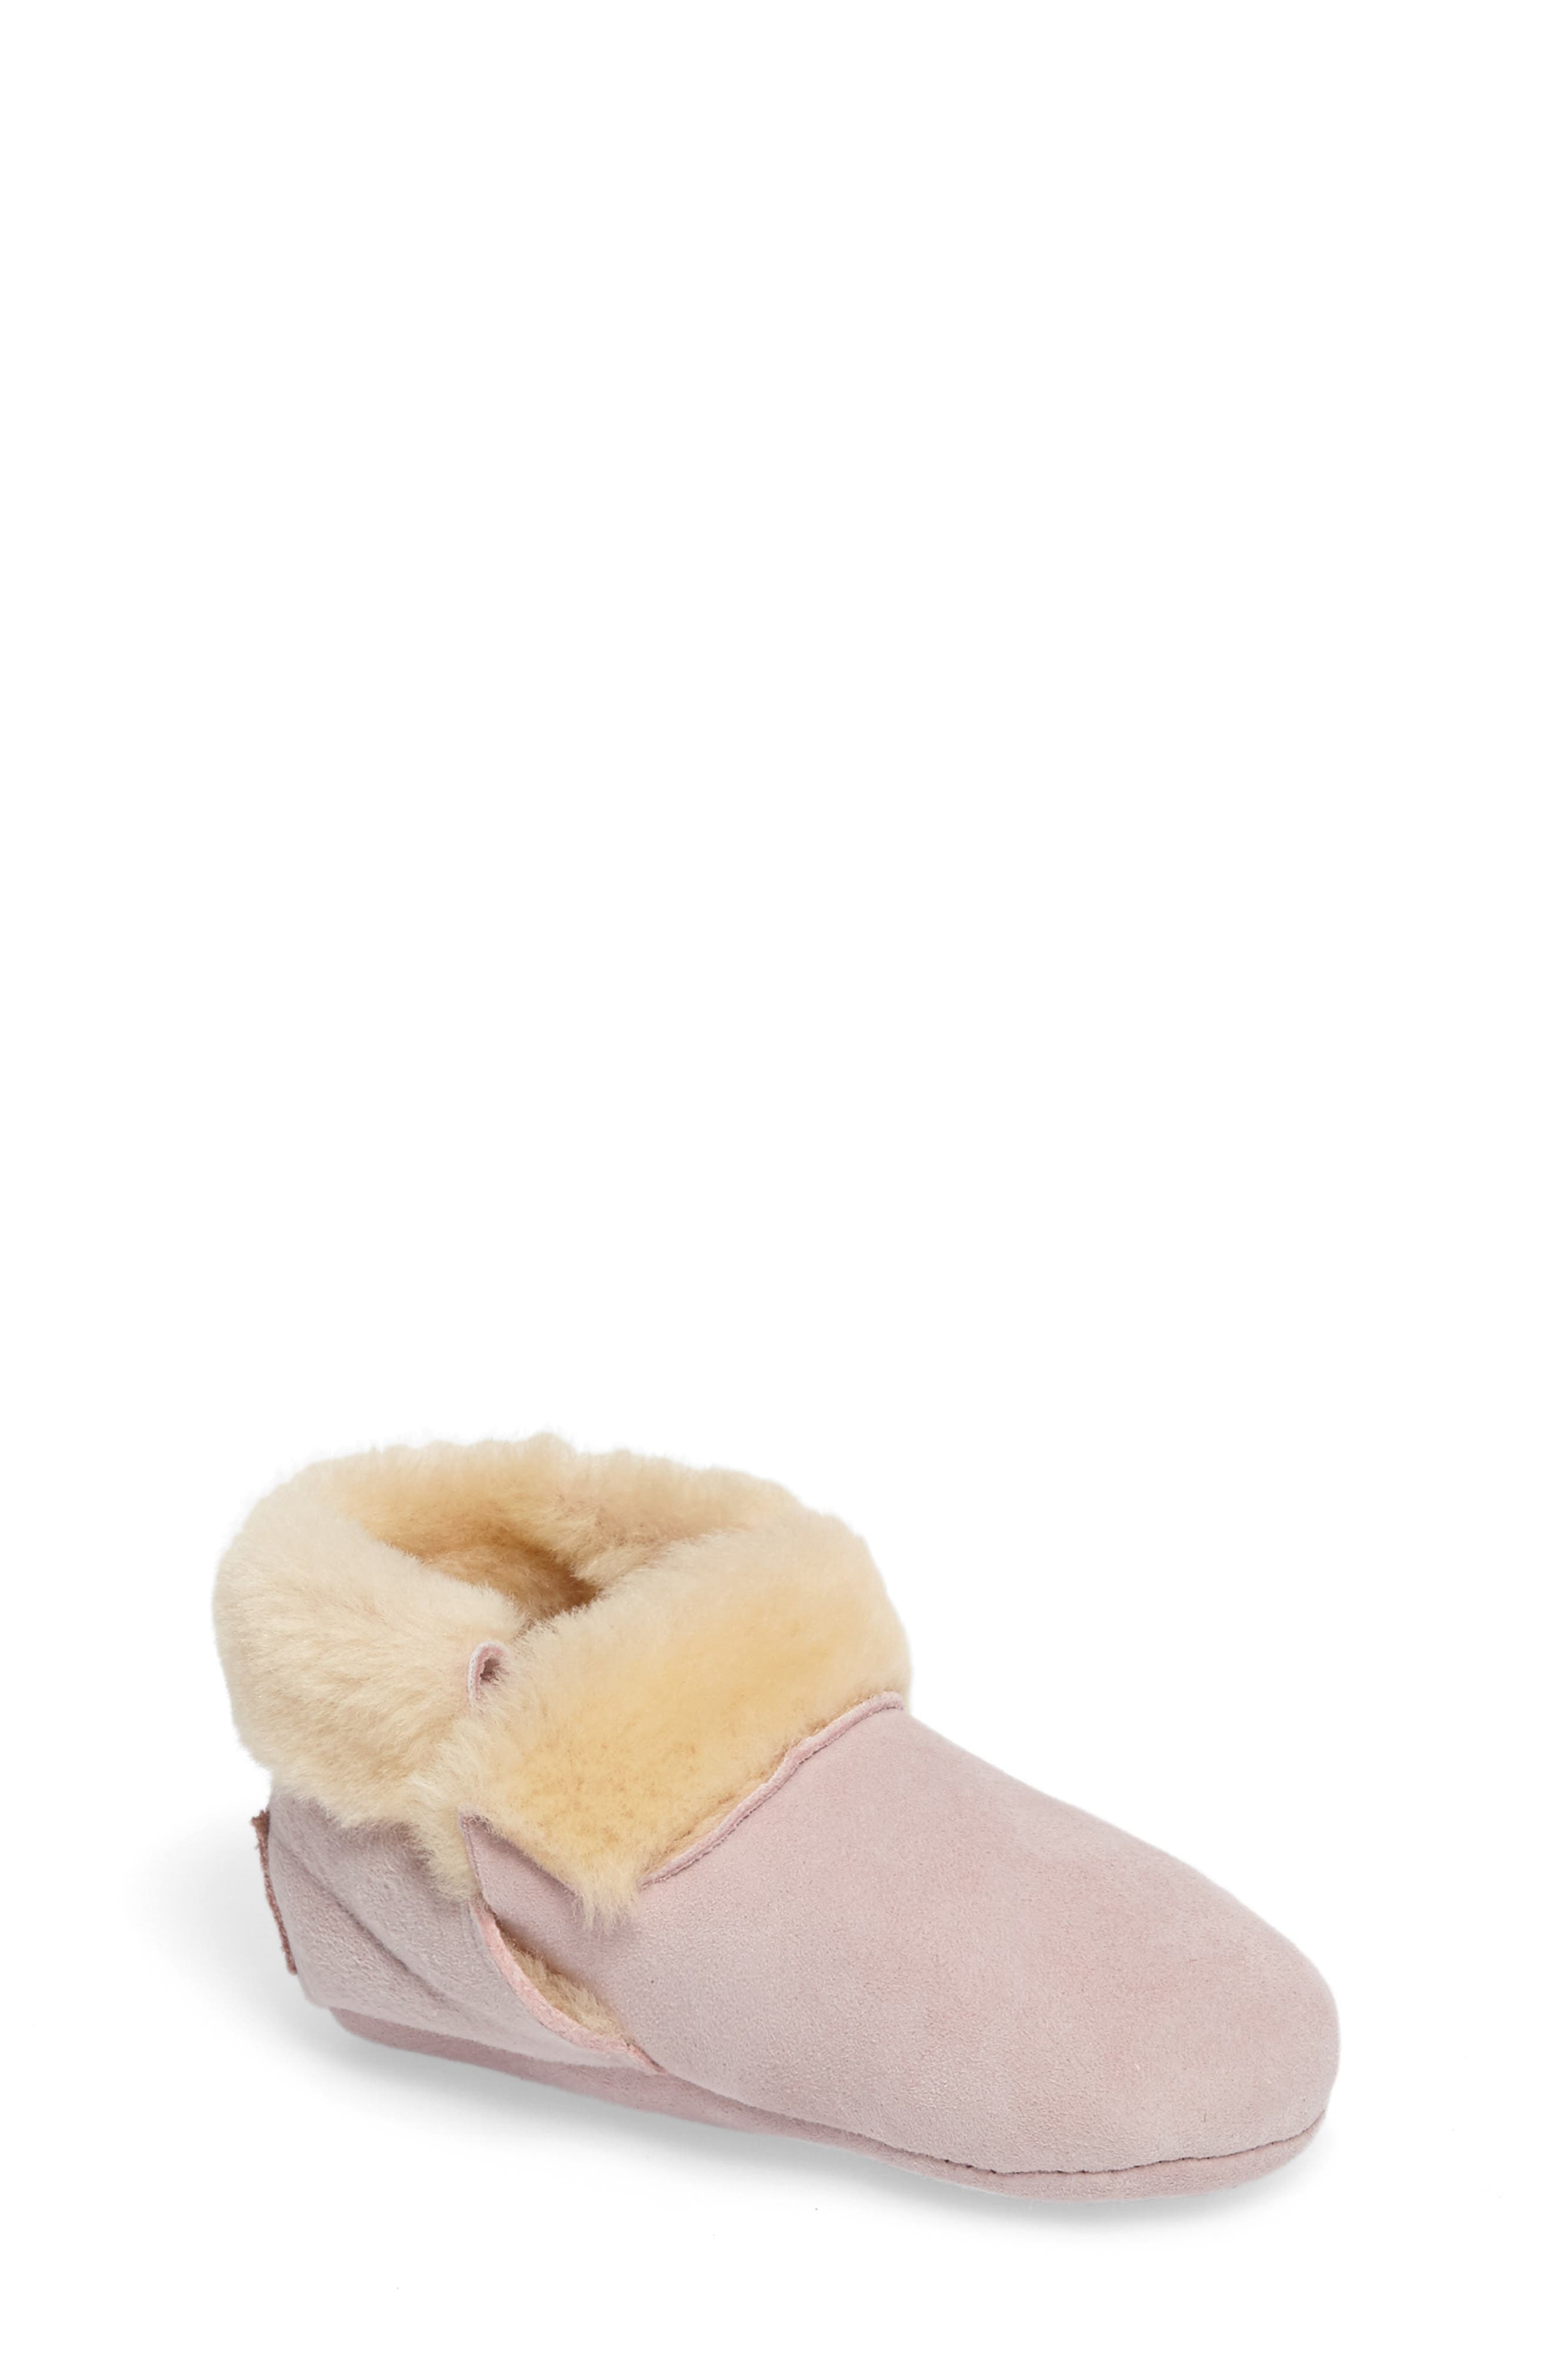 Solvi Genuine Shearling Low Cuffed Bootie,                             Main thumbnail 1, color,                             650